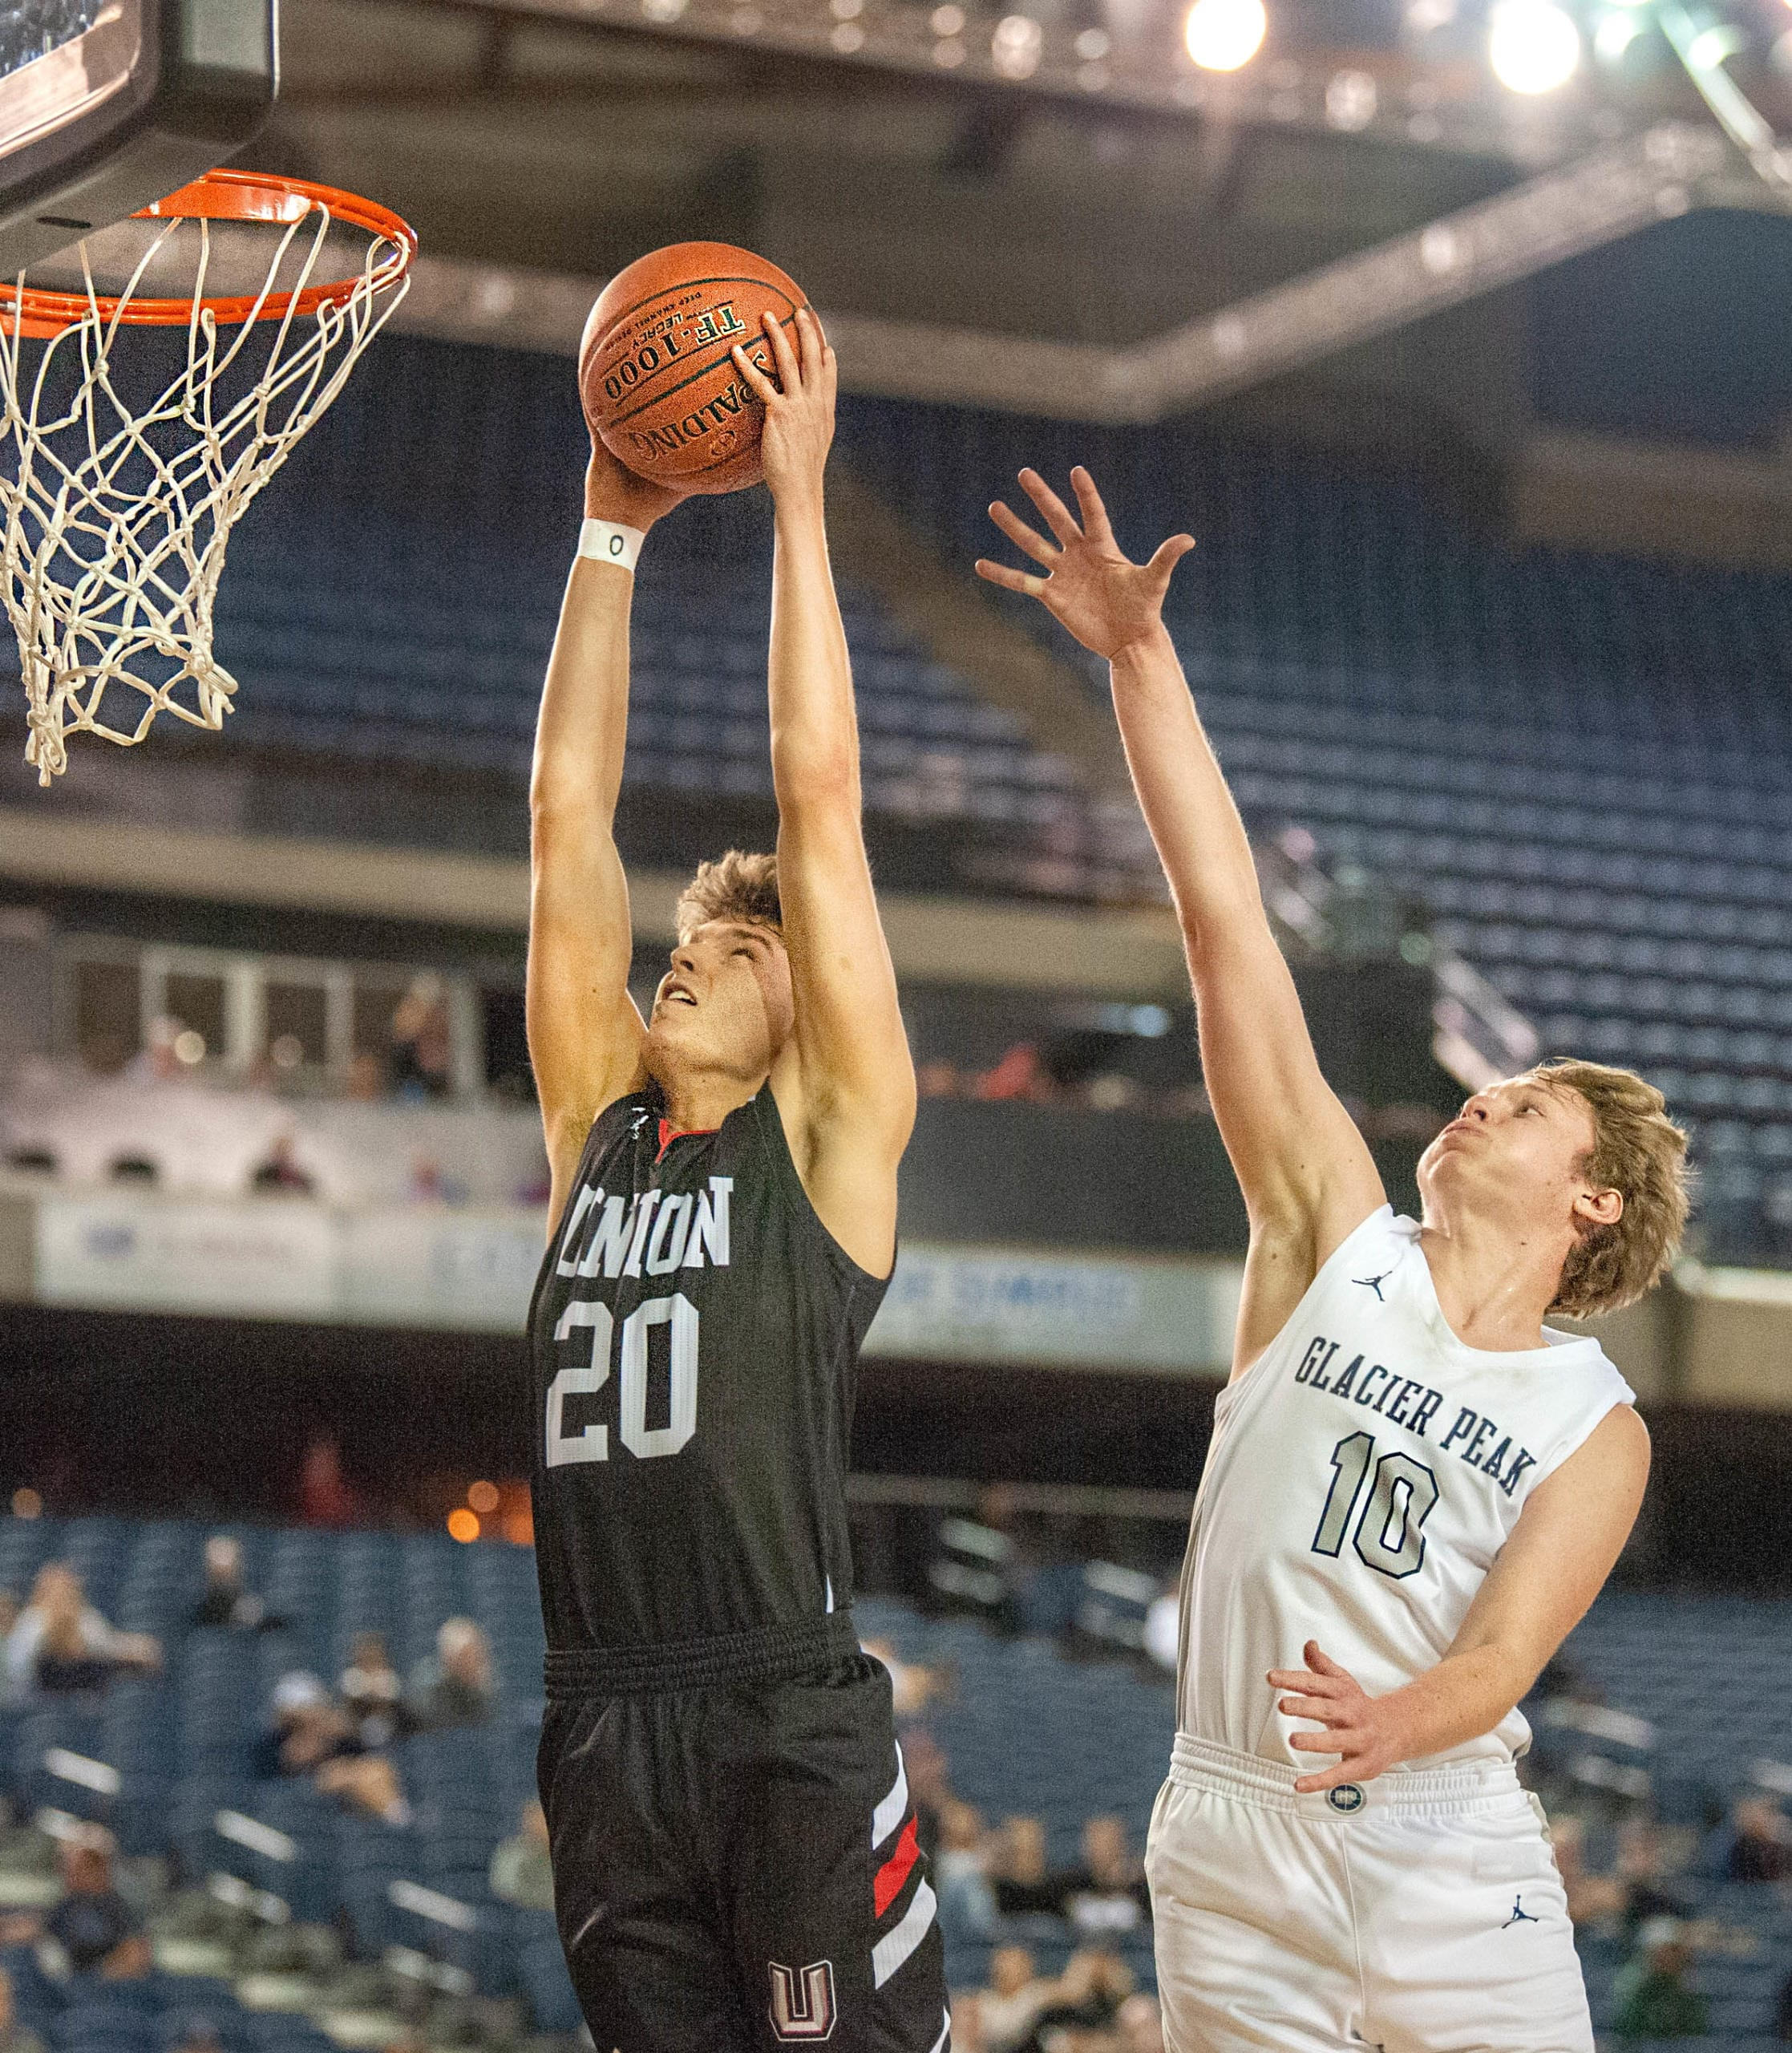 Union's Josh Reznick rises up for a dunk as Glacier Peak's Tristan Bates tries to defend in the TItans' 63-49 in the 4A State trophy game on Saturday at the Tacoma Dome. (Joshua Hart/The Columbian)